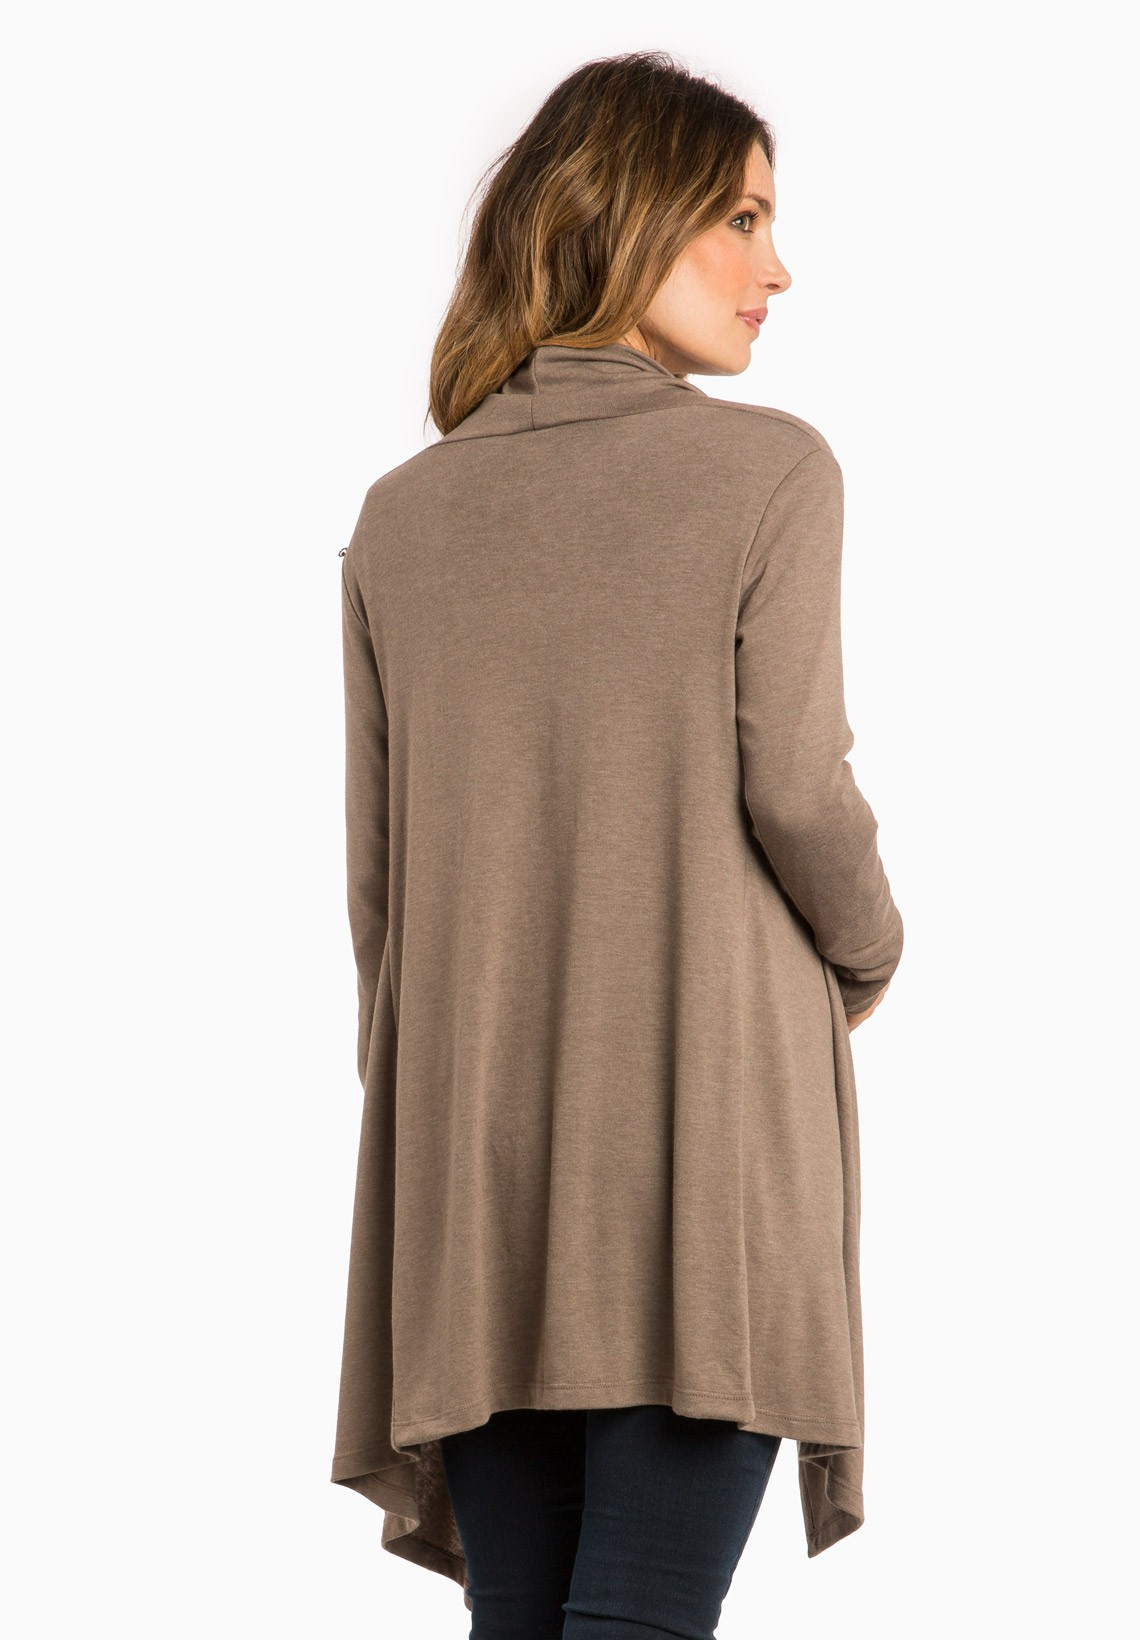 Shop a variety of maternity clothes online at Destination Maternity. Featuring Motherhood maternity sweaters in a selection of styles! Destination Maternity.